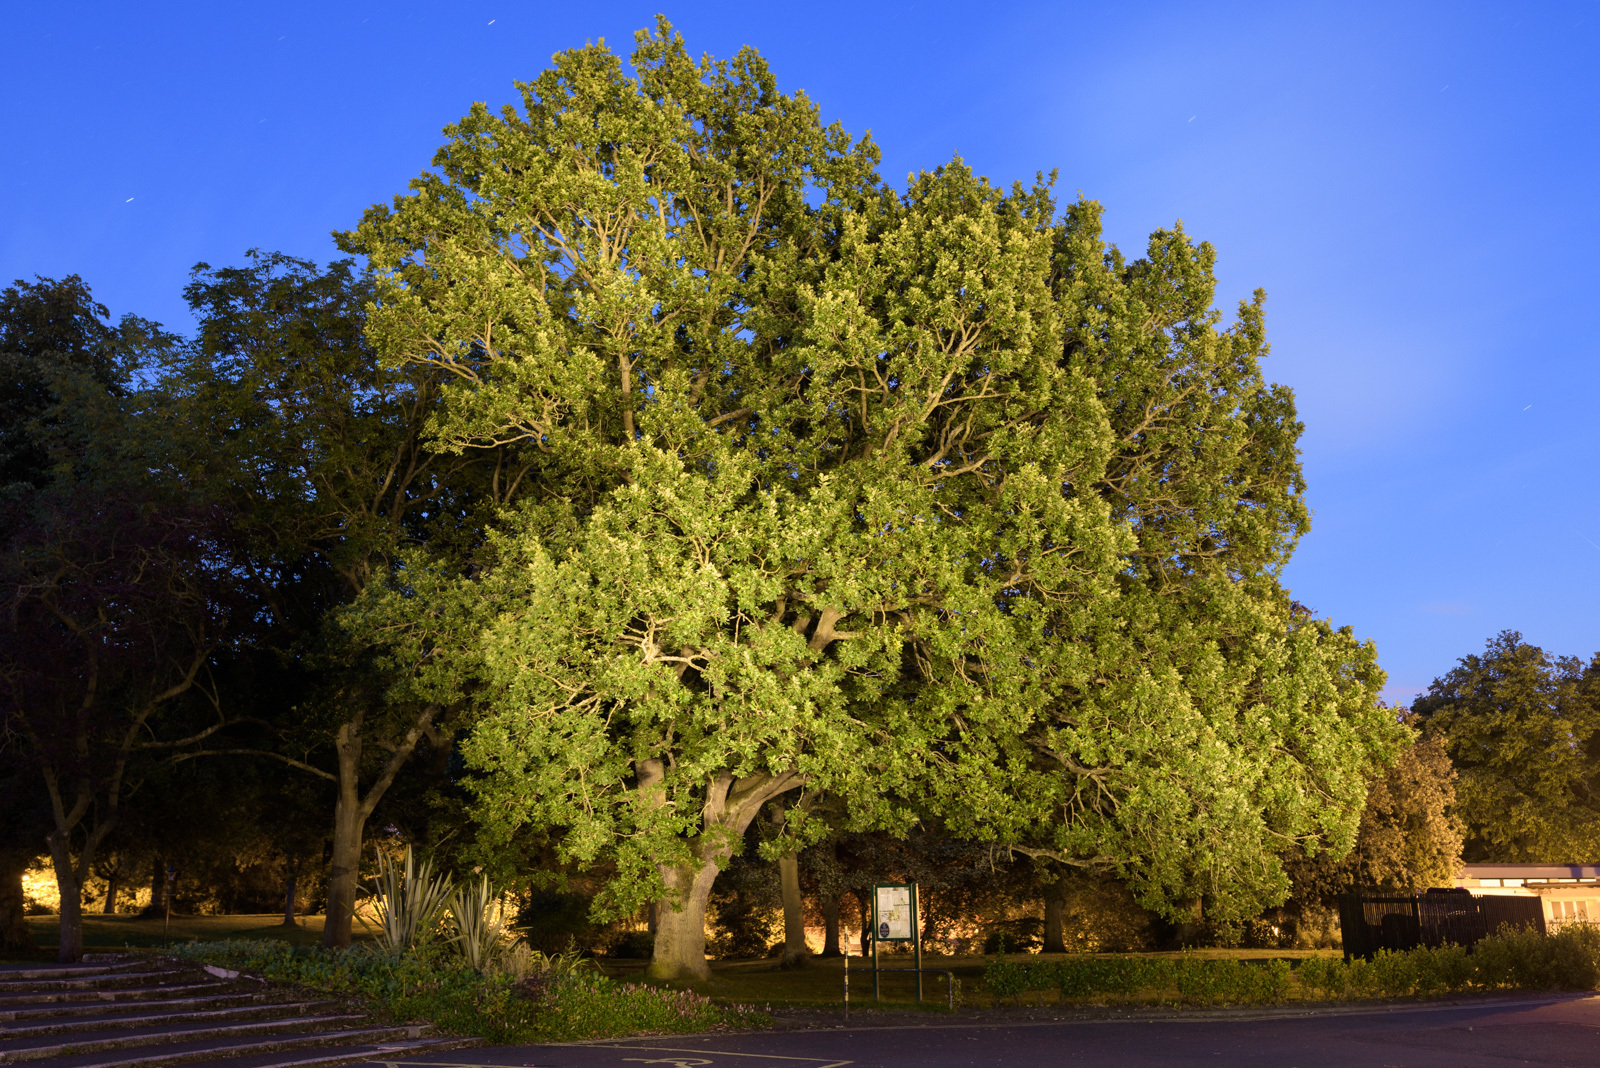 The Carnegie Oak in Dunfermline could be named Scotland's favourite tree